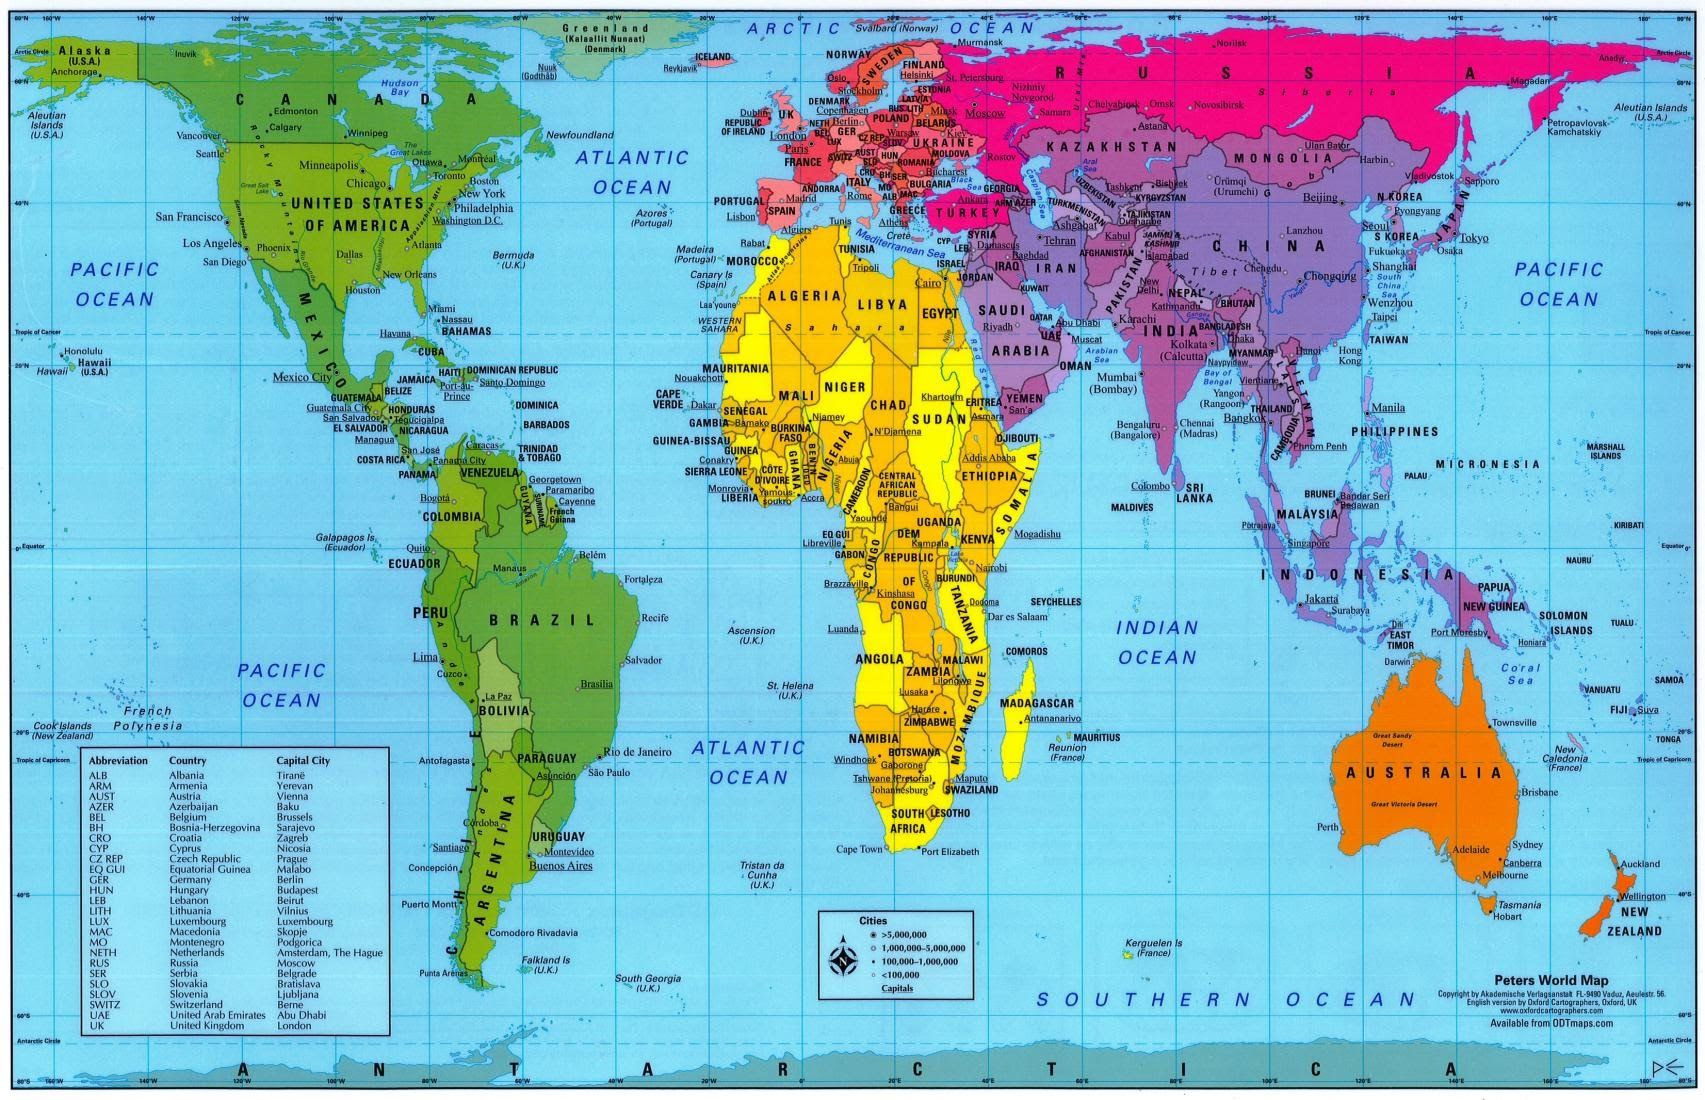 Peters Projection World Map 2 Accurate World Map World Map